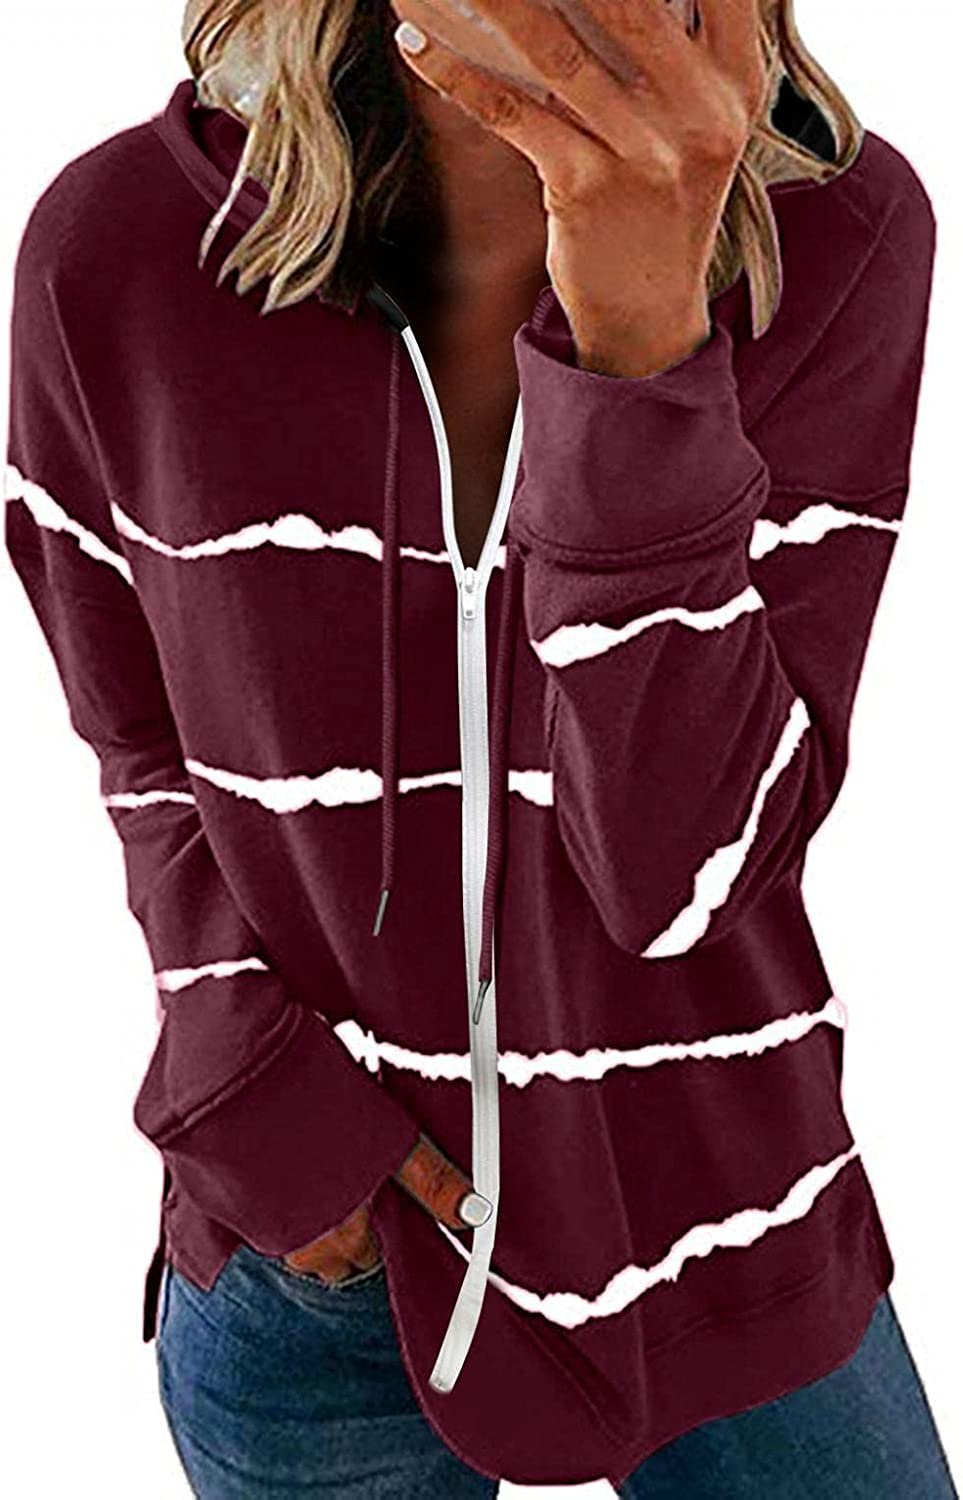 AODONG Sweaters for Women,Womens Zipper Casual Striped Printed Sweatshirt Drawstring Loose Long Sleeve Pullover Tops